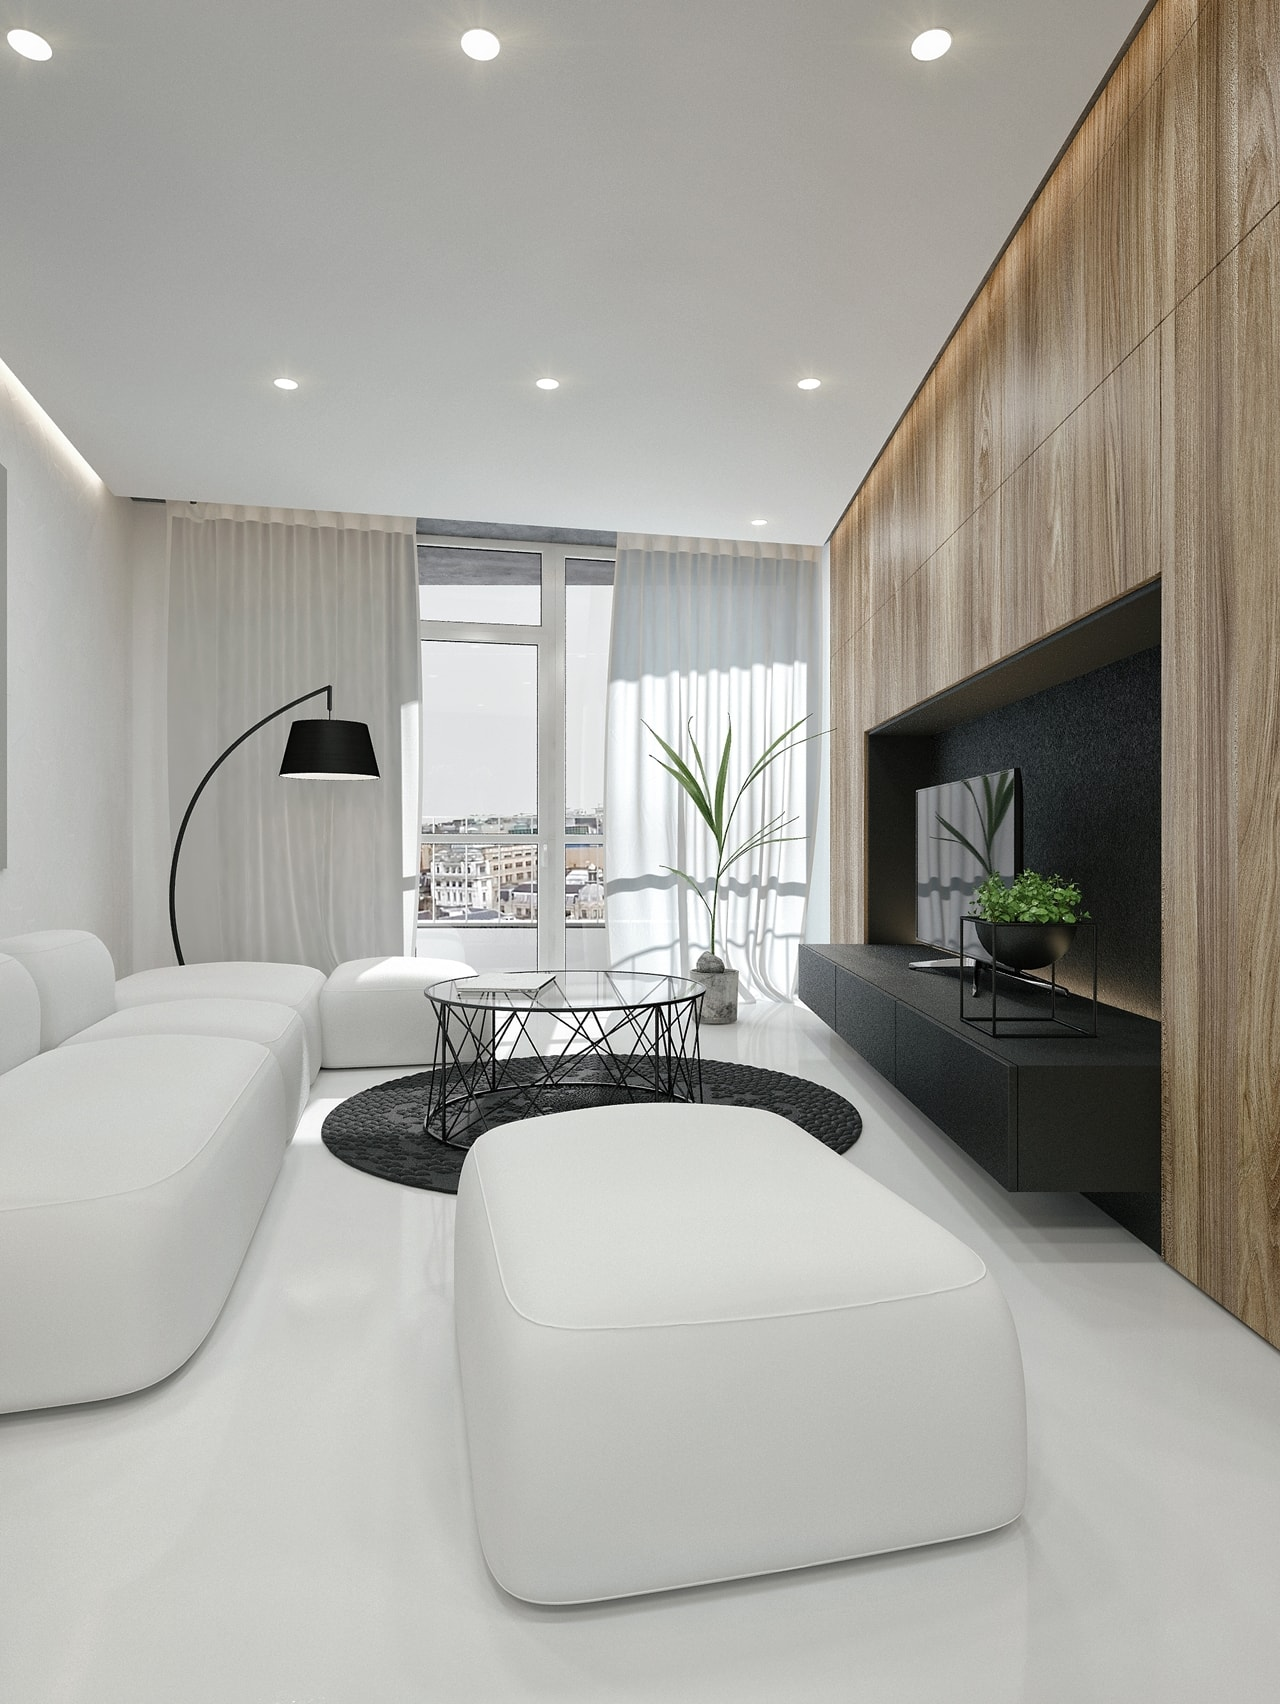 Black and white interior design ideas modern apartment by id white architecture beast - Interior design ideas ...